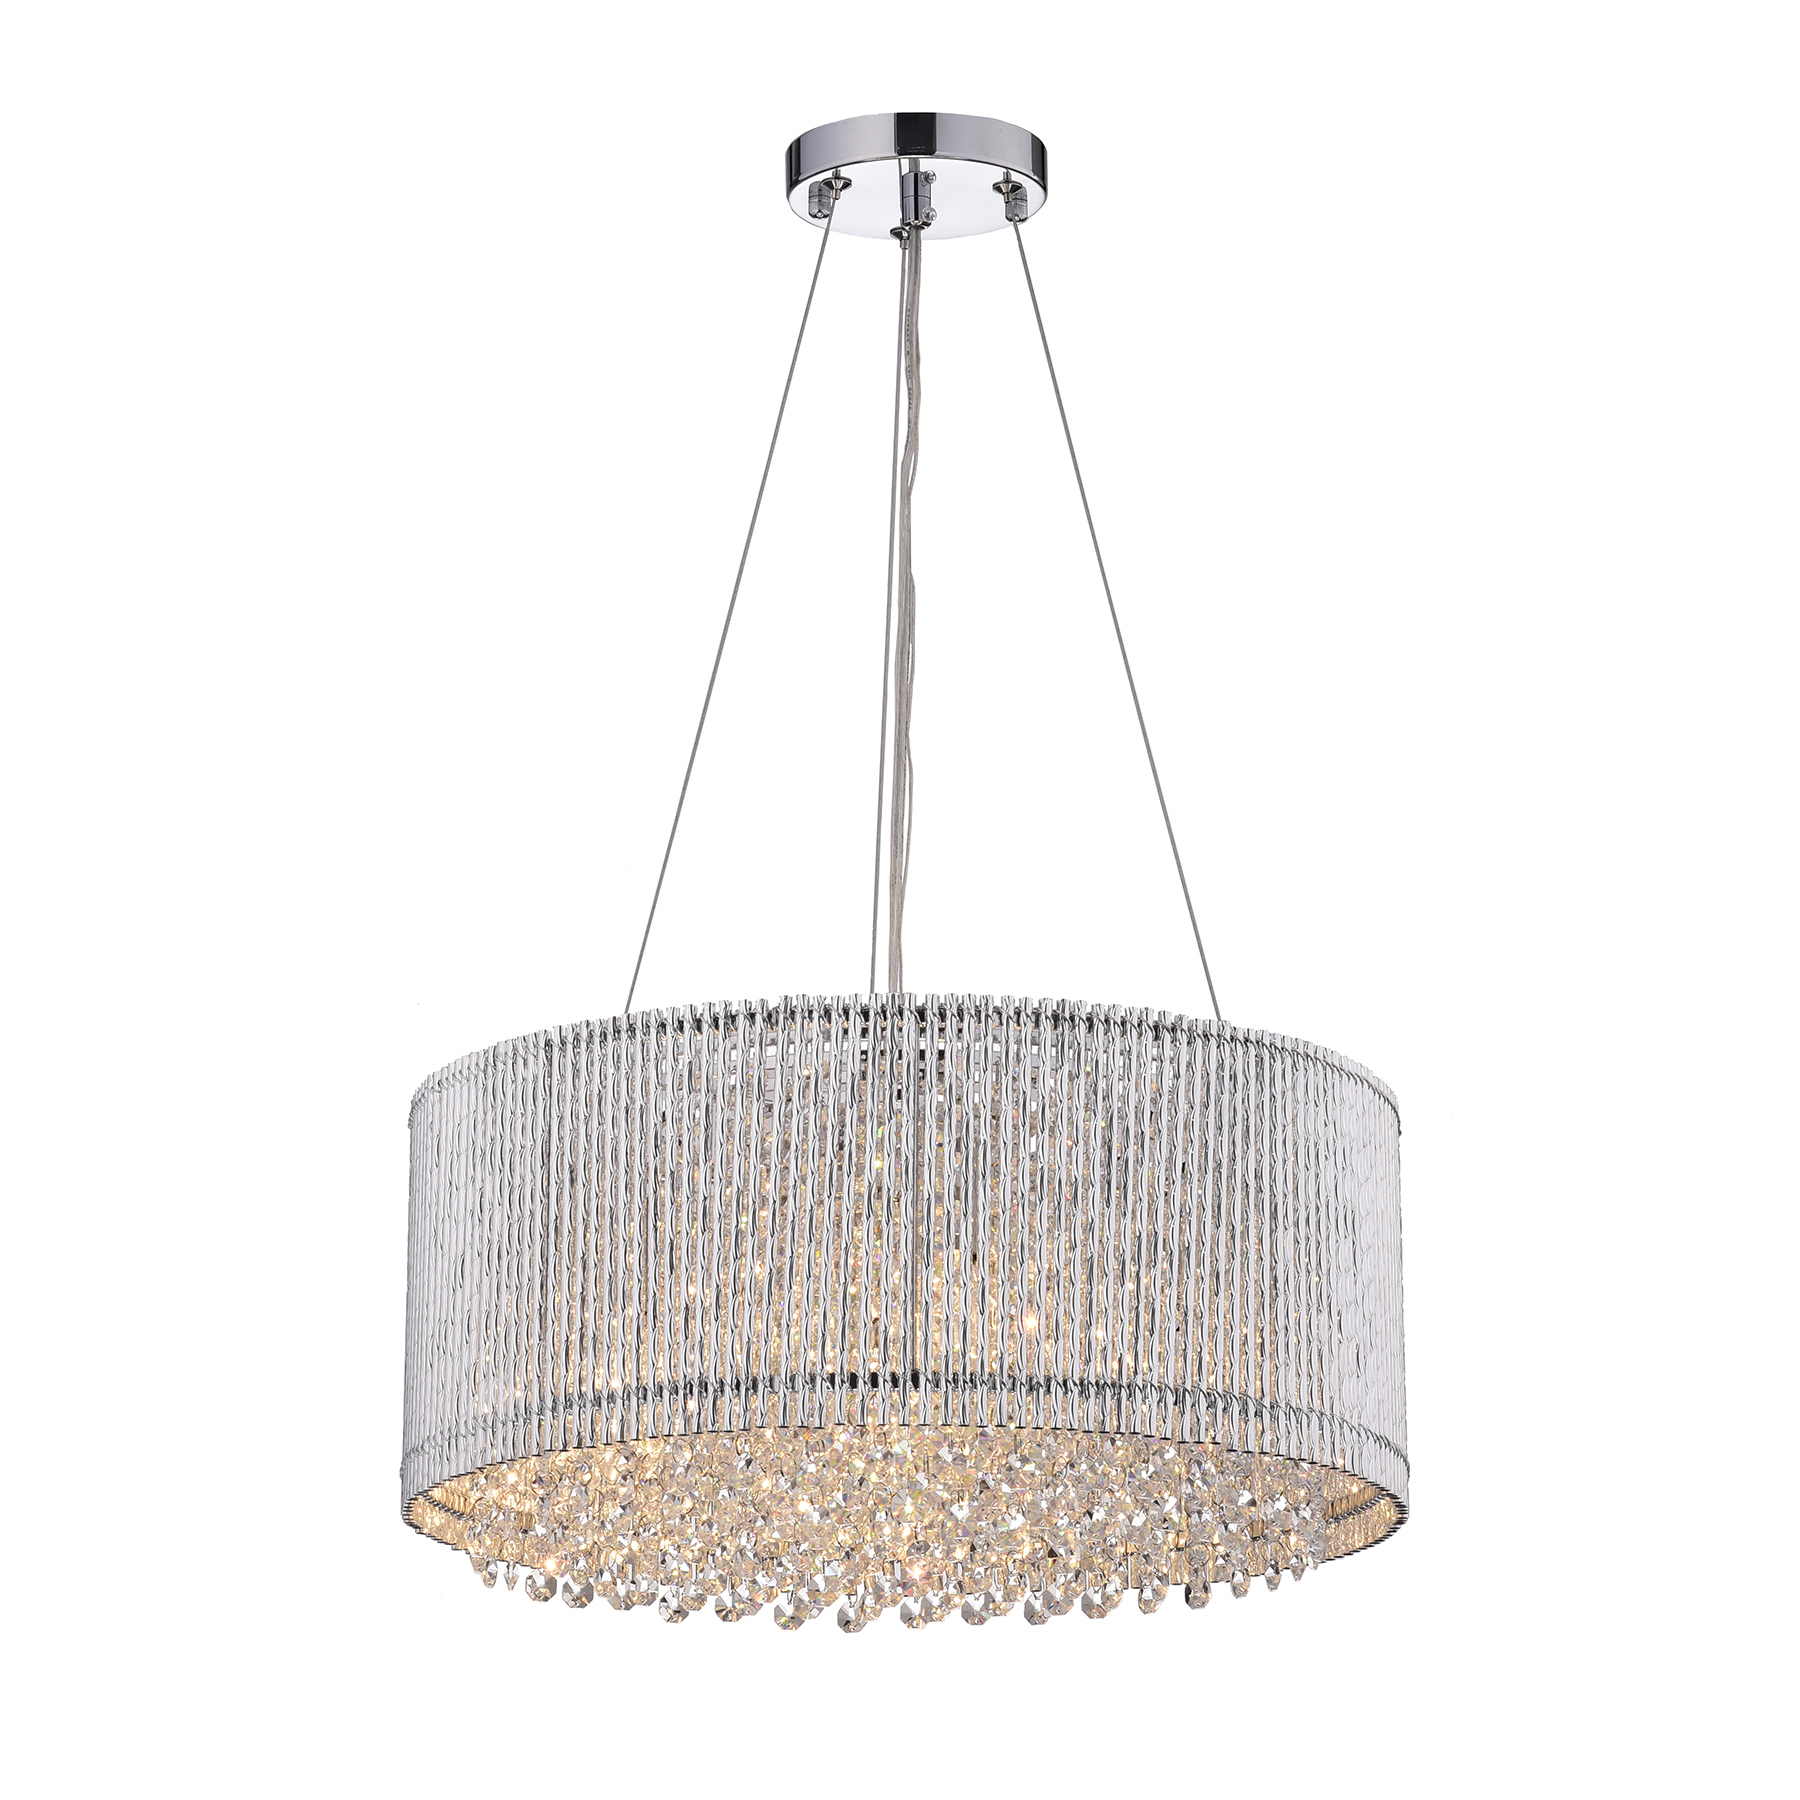 Pamina 4 Light Chrome Tubes Drum Shade Chandelier With Hanging Crystals Edvivi Lighting